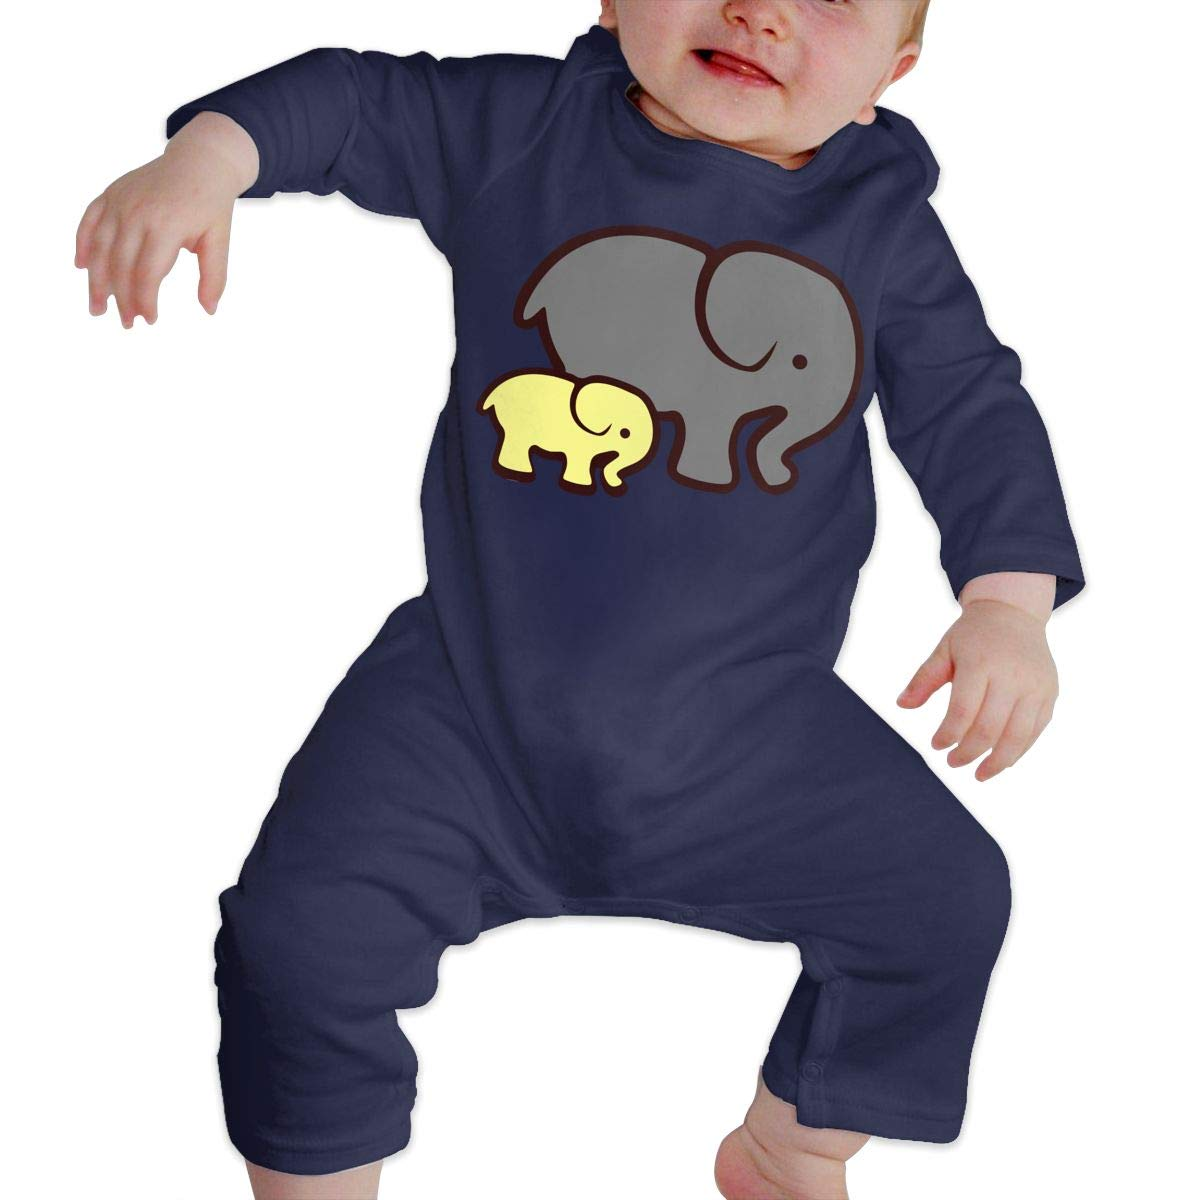 LBJQ8 Yellow Elephant Mom /& Baby Newborn Toddler Baby Soft /& Breathable Bodysuit Outfits Clothes